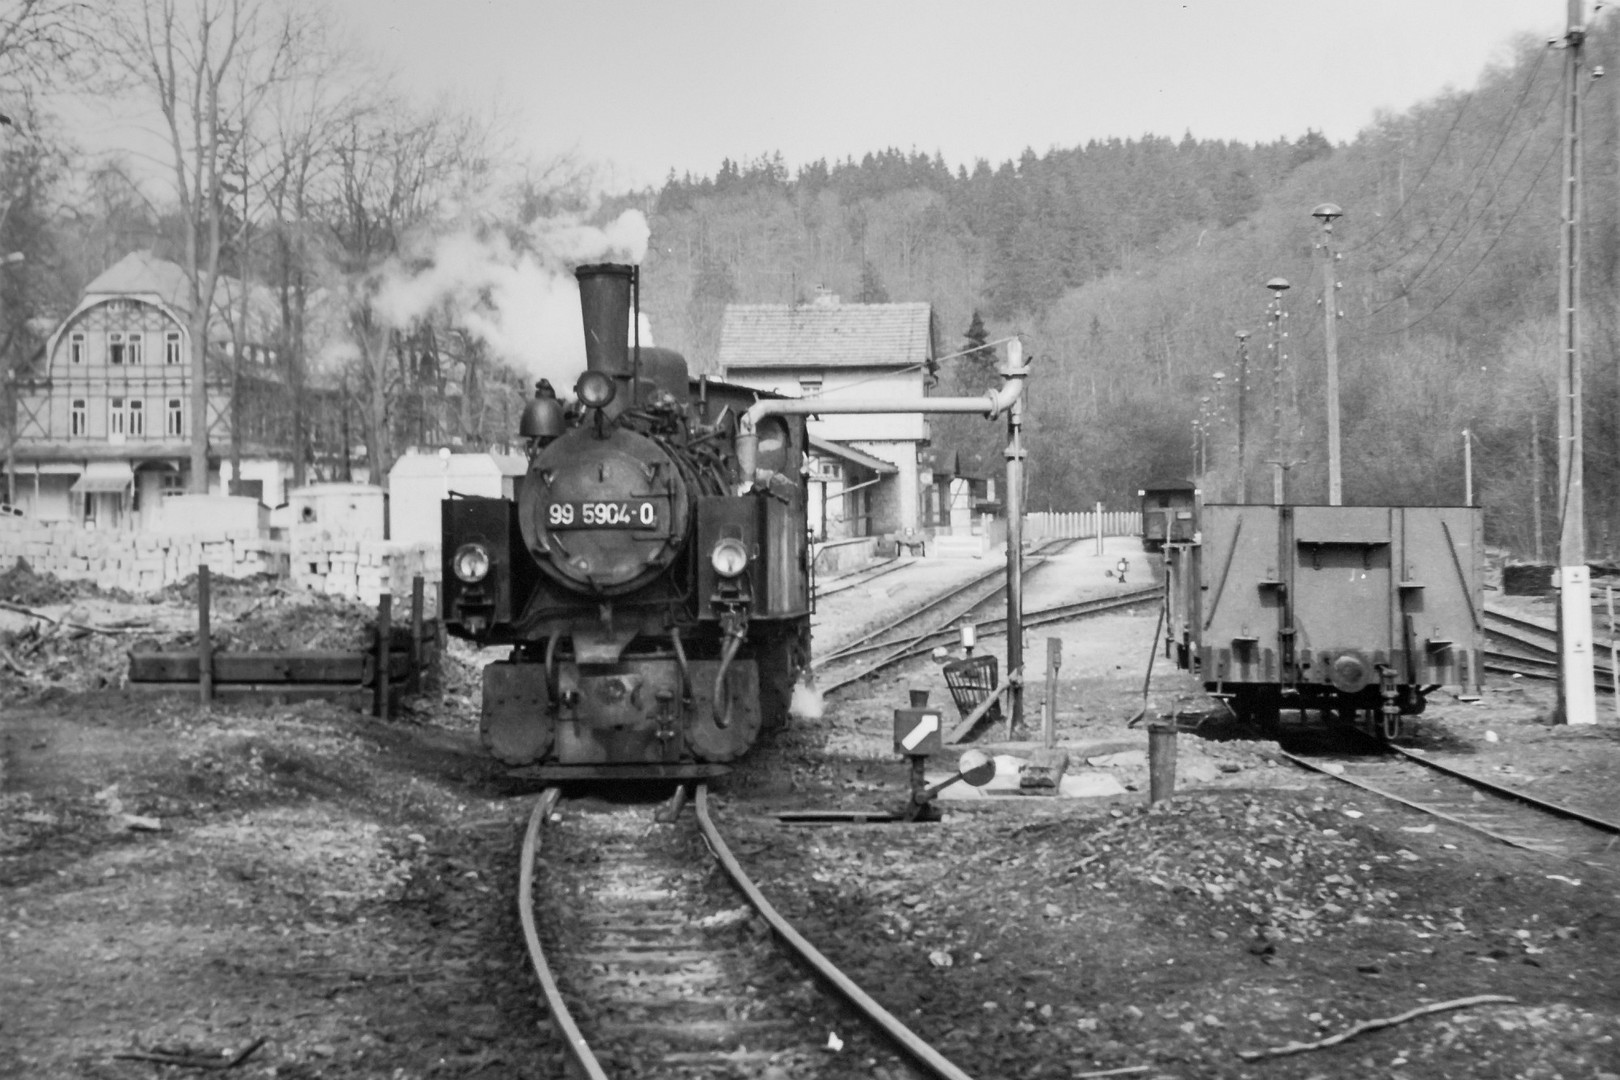 99 5904 in Alexisbad